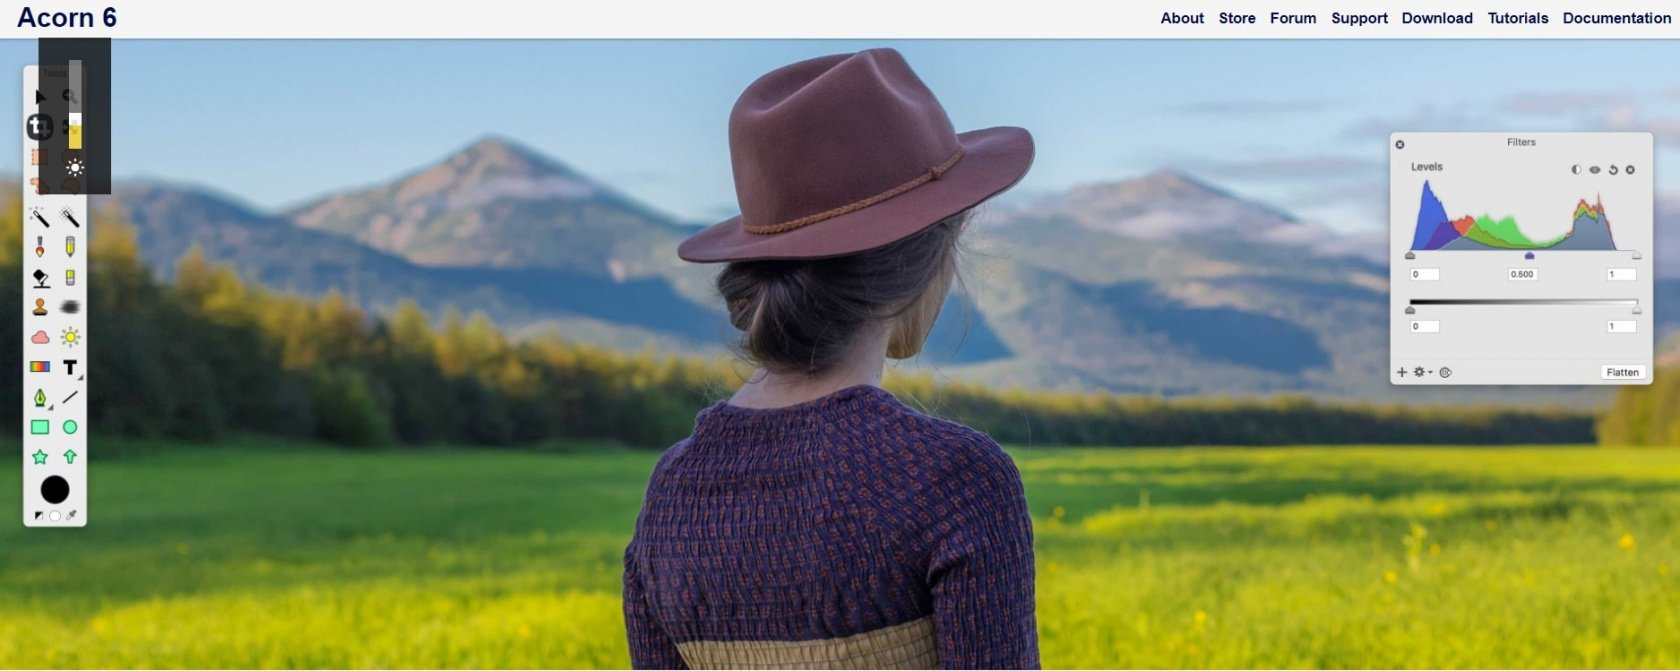 The Best Photo Editing Software in 2019 You May Not Know Of